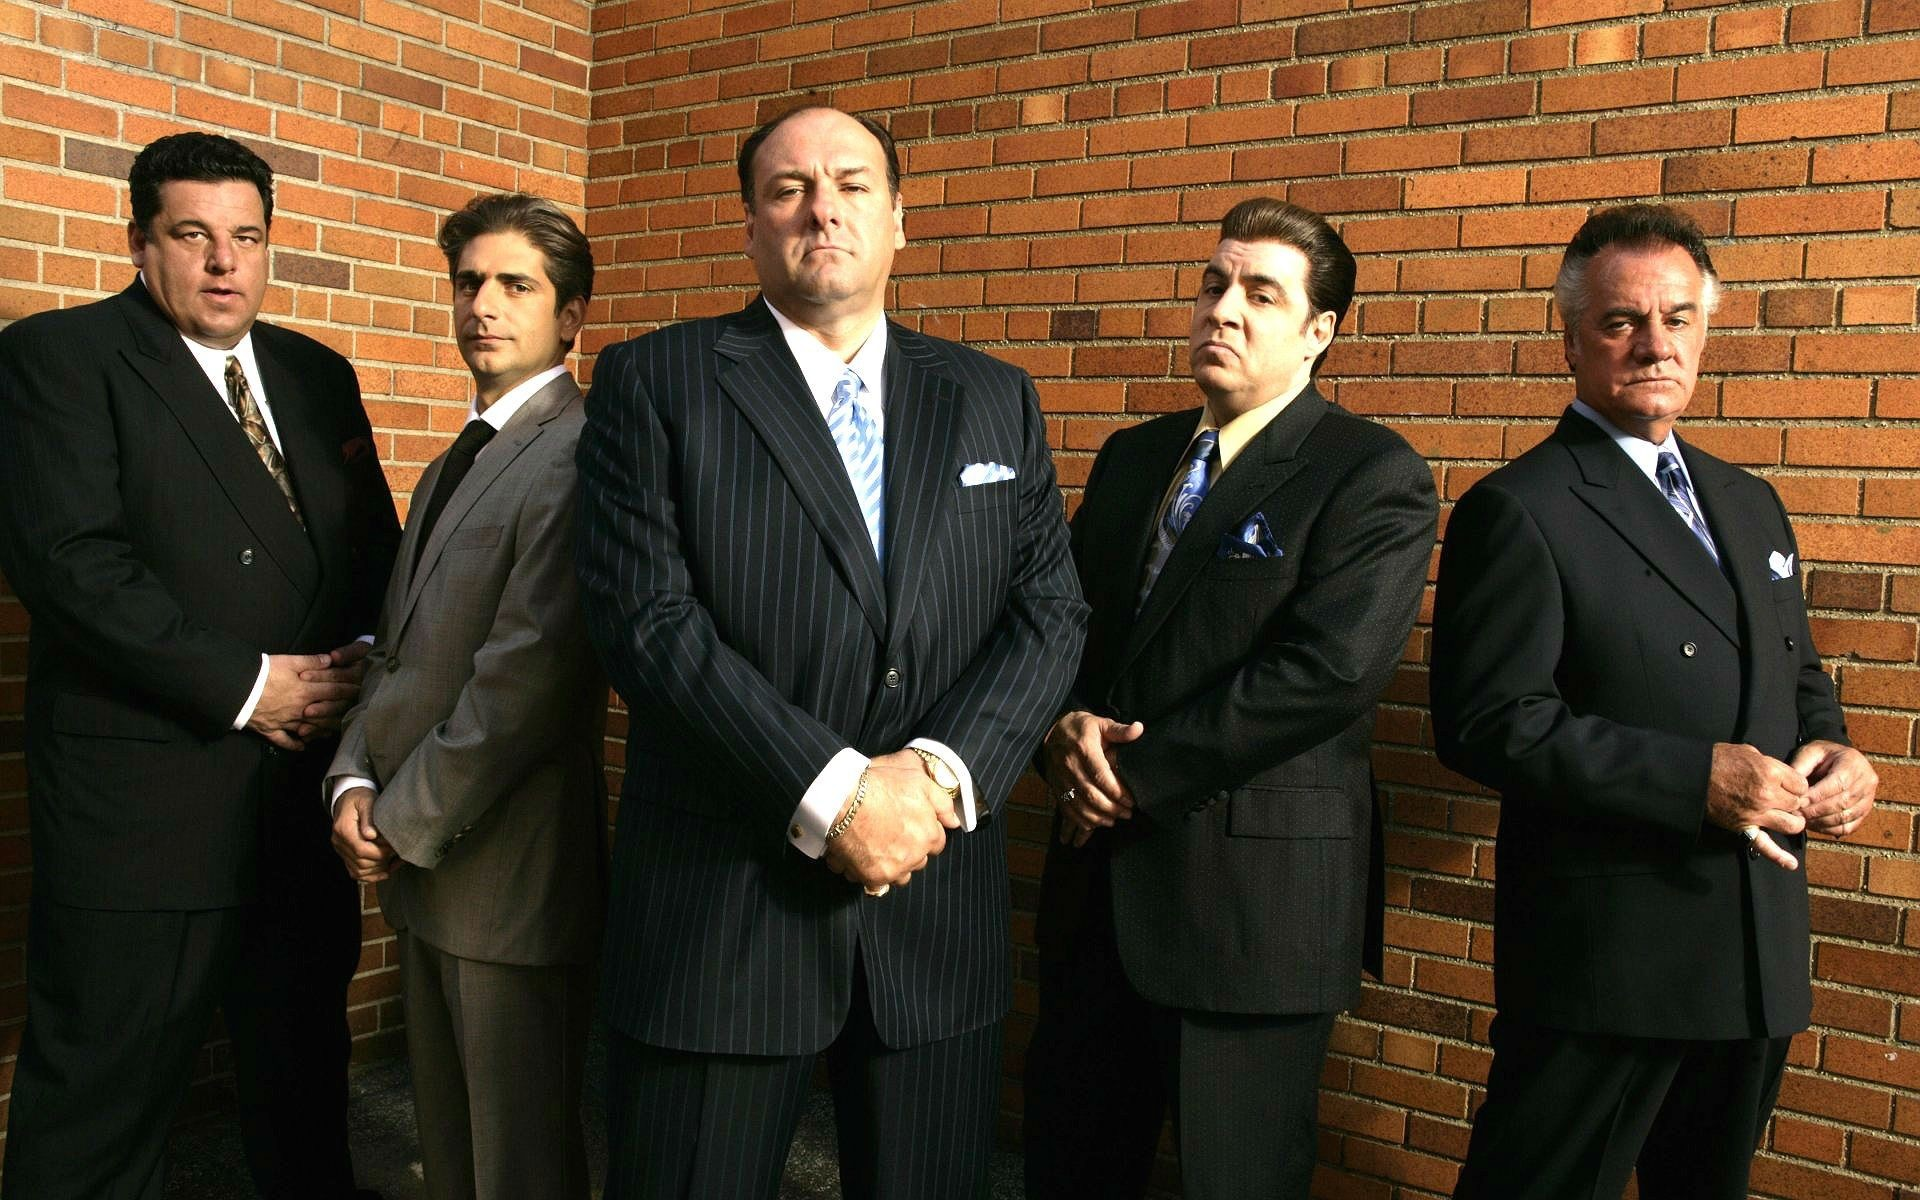 Res: 1920x1200, HQ Definition Wallpaper Desktop the sopranos